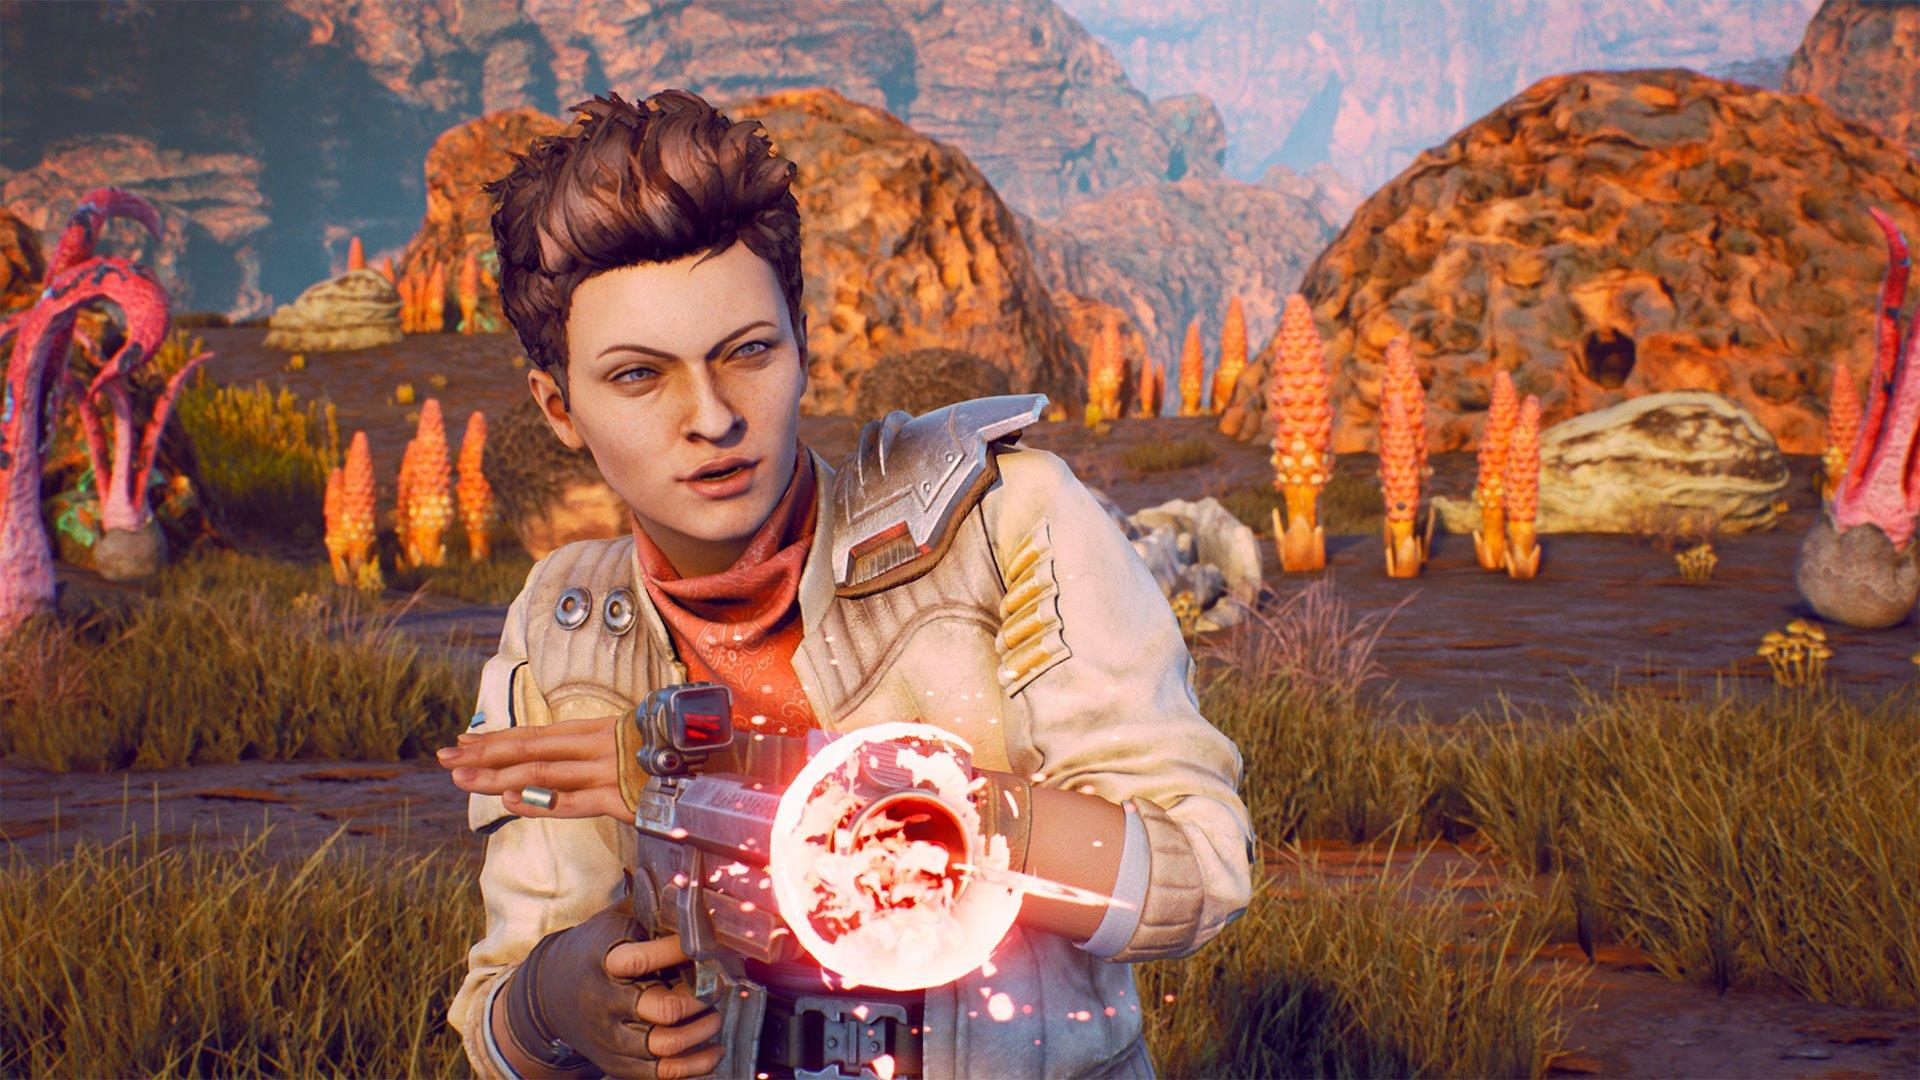 The Outer Worlds Makes Doing the Right Thing Both Fun and Impossible